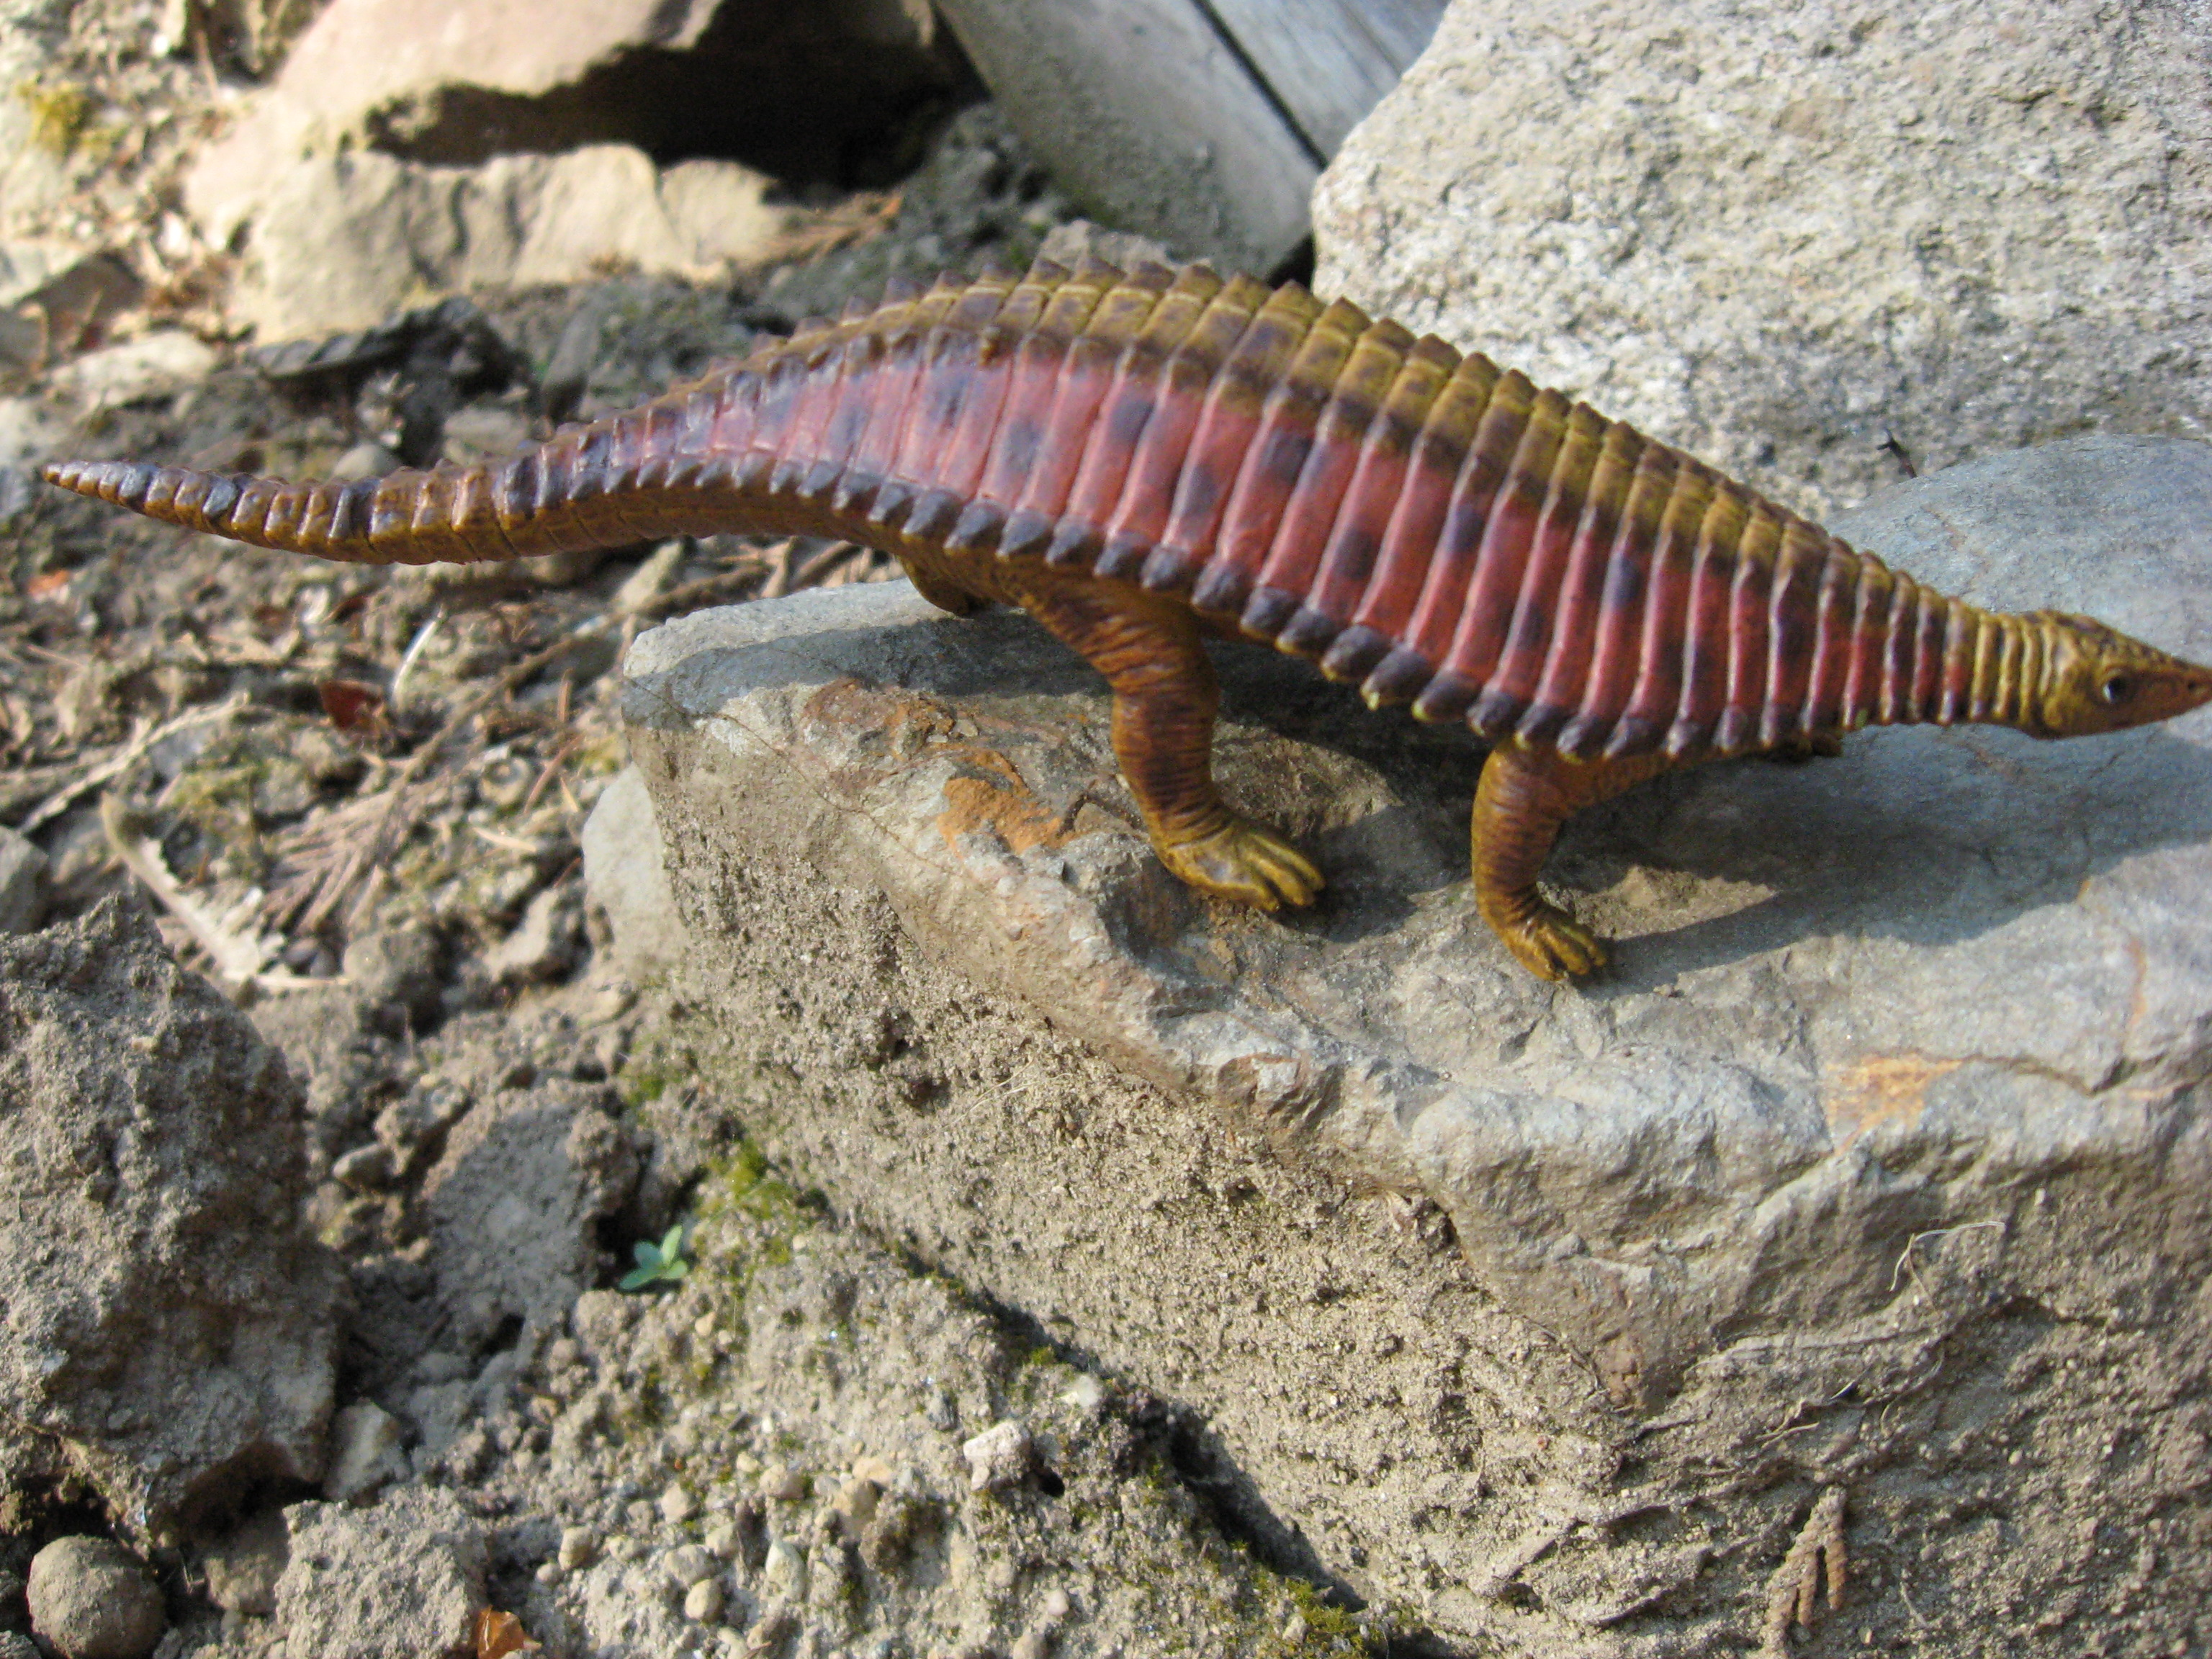 Paratypothorax (The World of Dinosaurs by Bullyland)